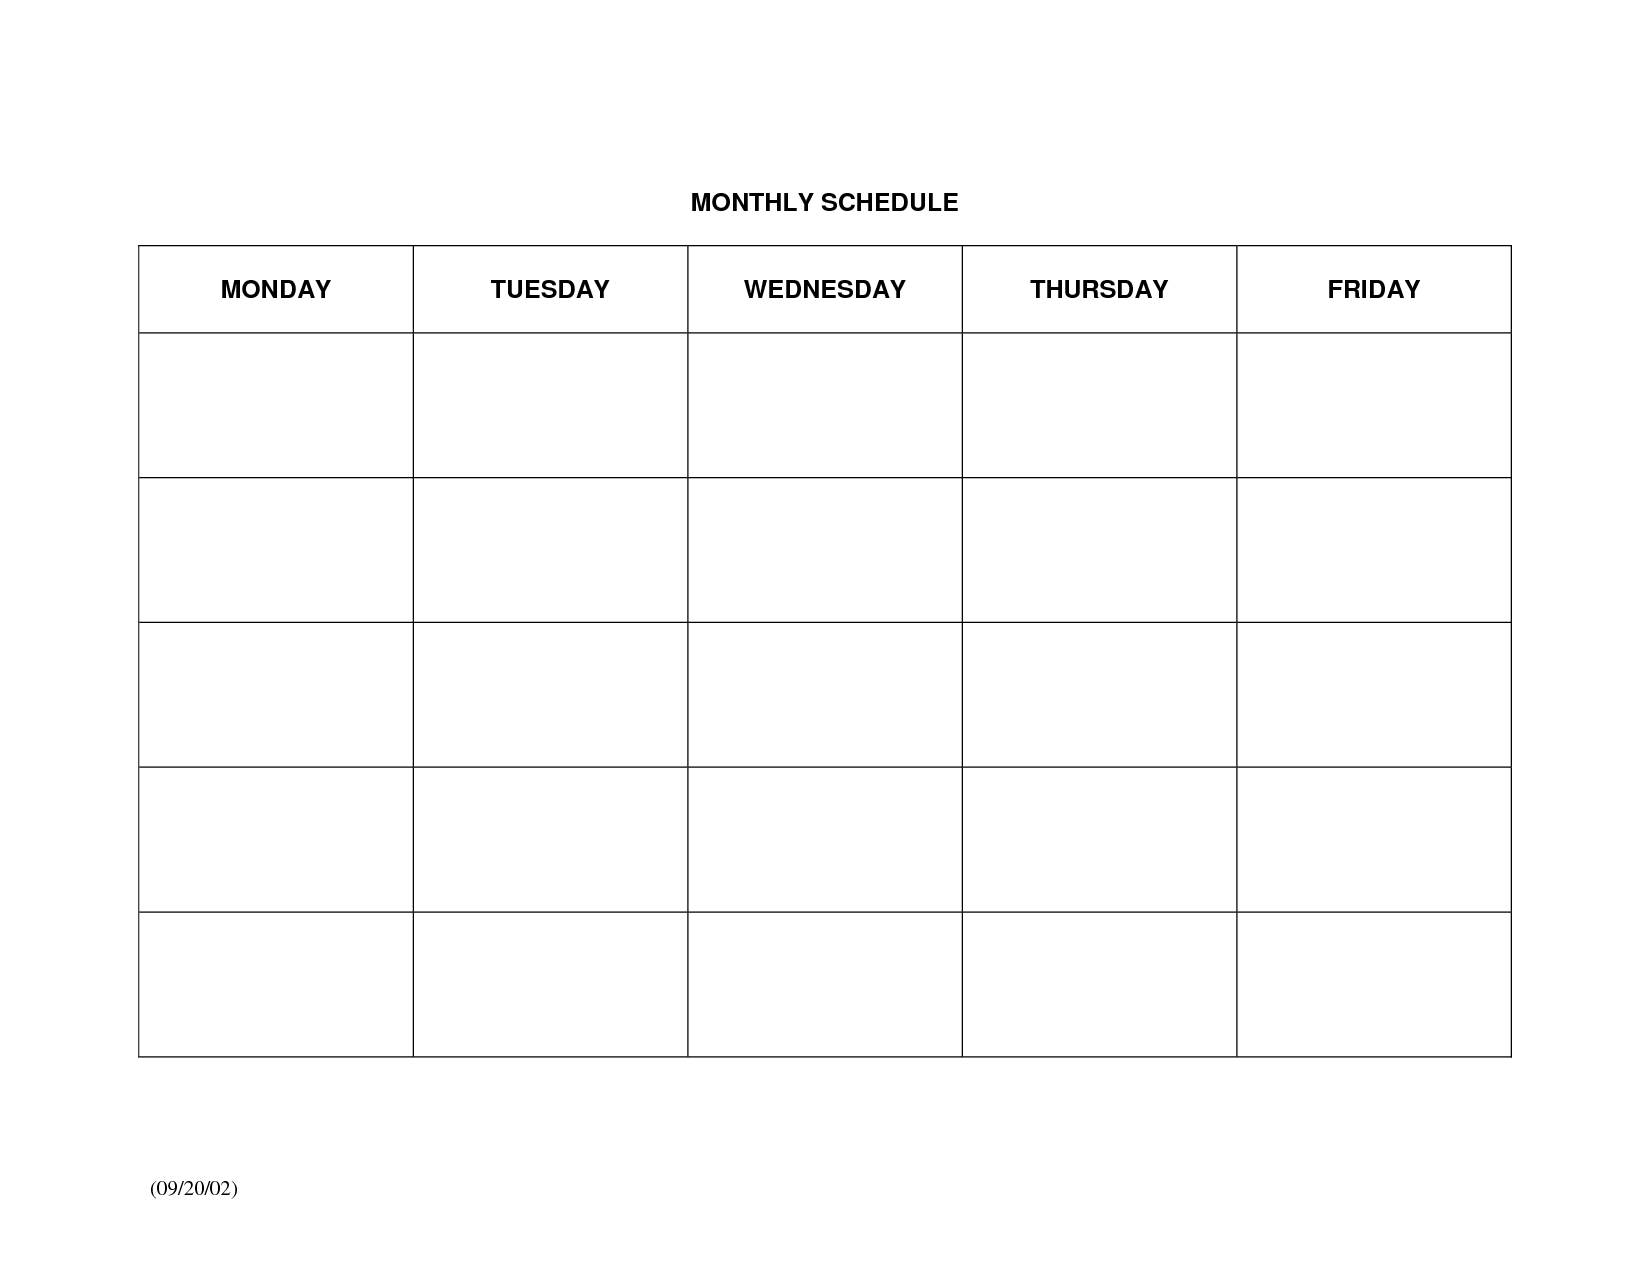 Calendar Monthly Schedule Template : Best images of free printable monthly schedule templates